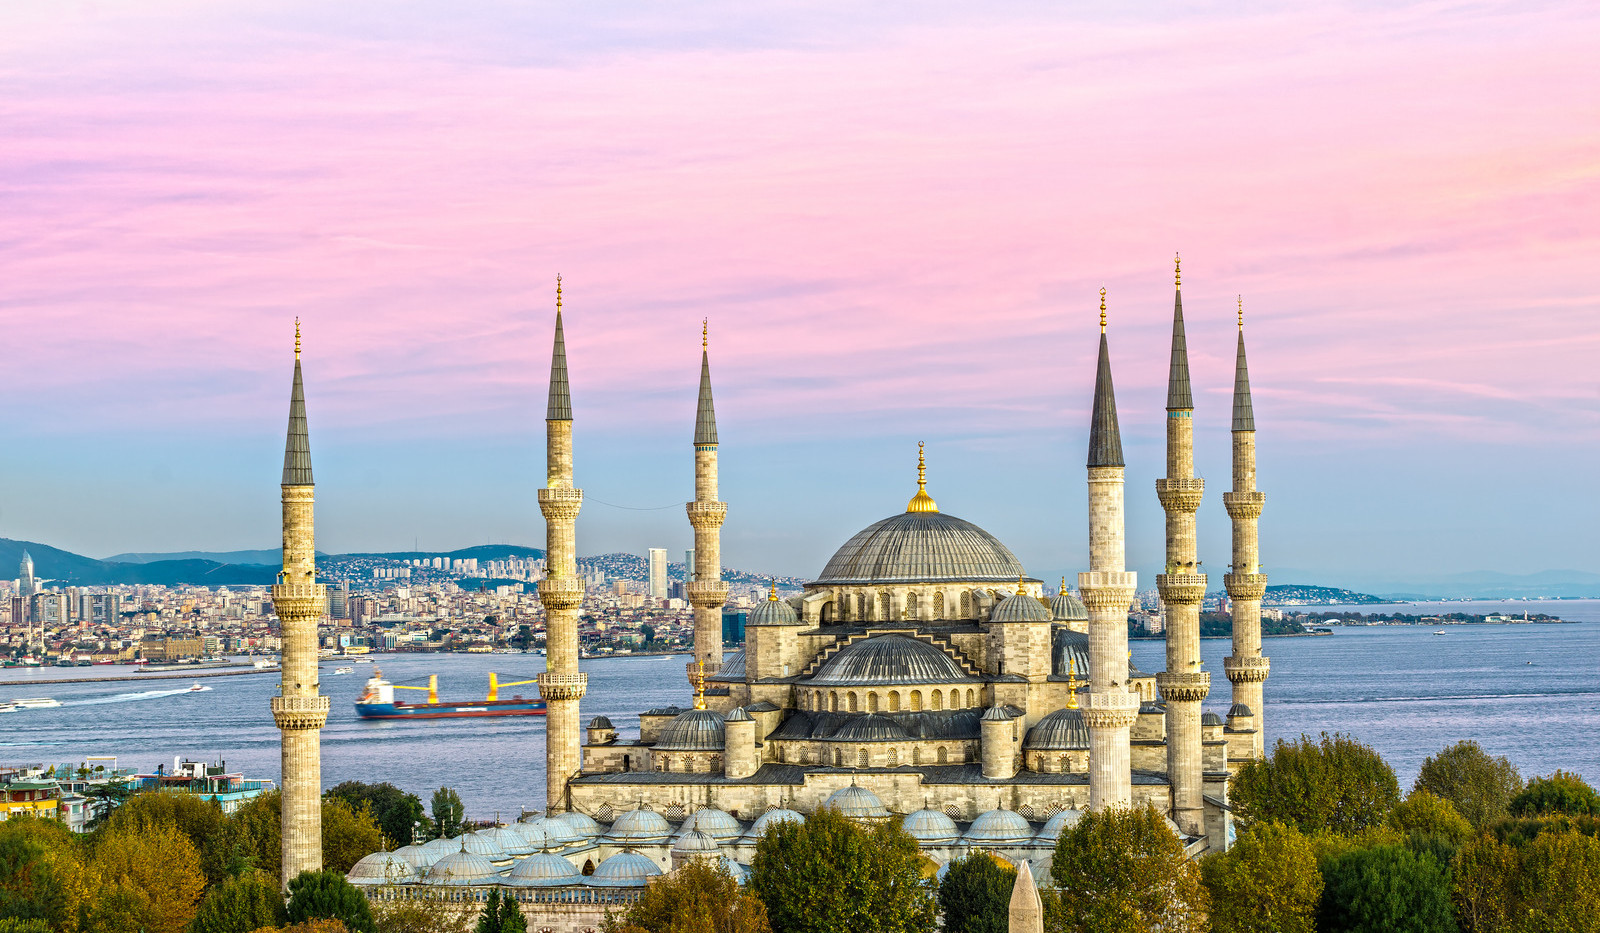 Canva - The Blue Mosque, Istanbul, Turke